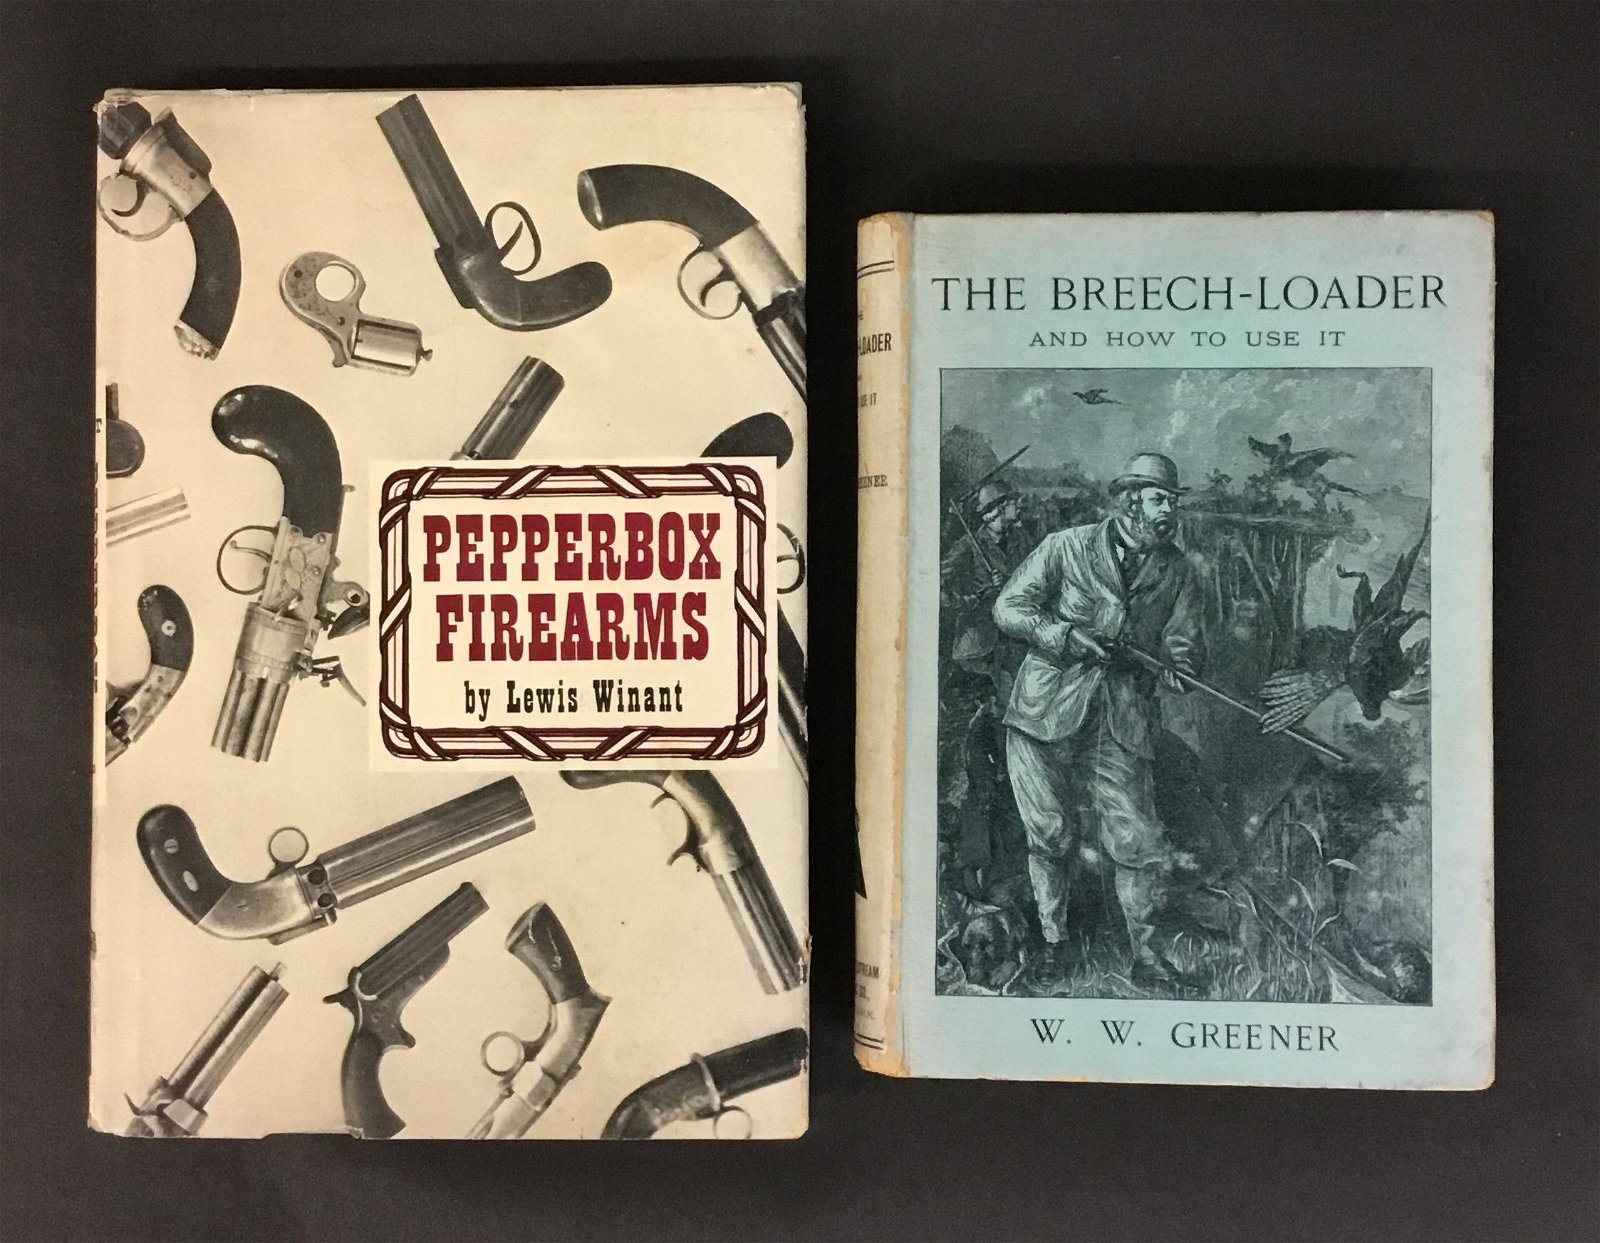 Pepperbox Firearms signed by Winant and The